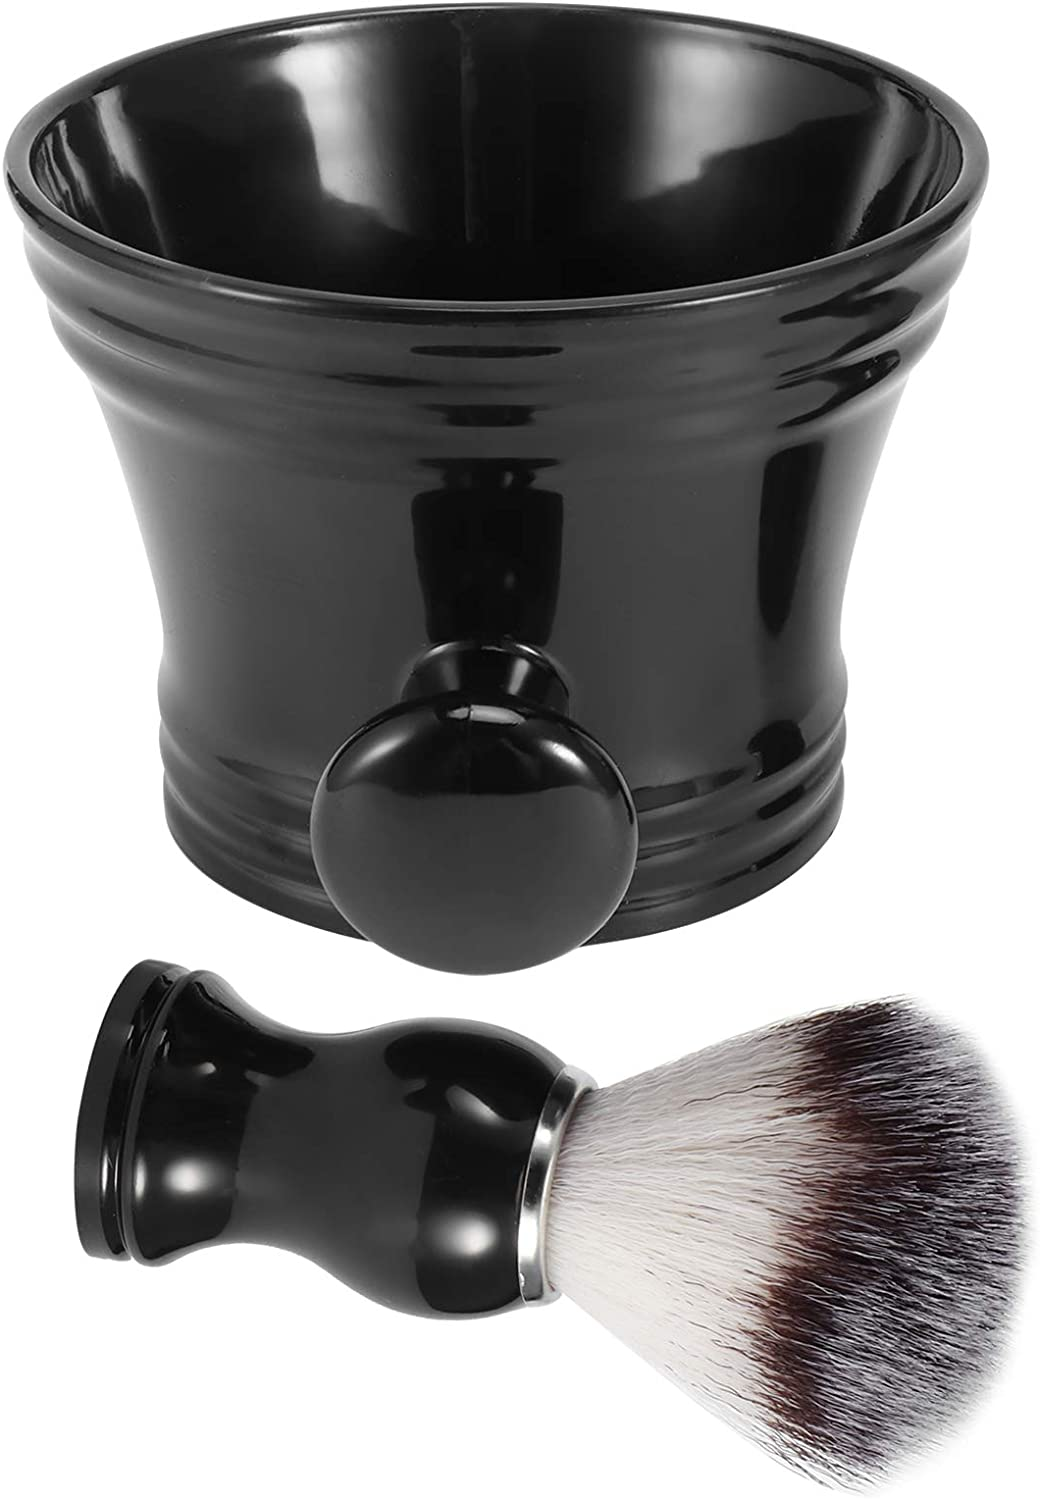 Zerodis Shaving Brush Set with Soap Barber High Sales results No. 1 quality new Beard Bowl Care Soft